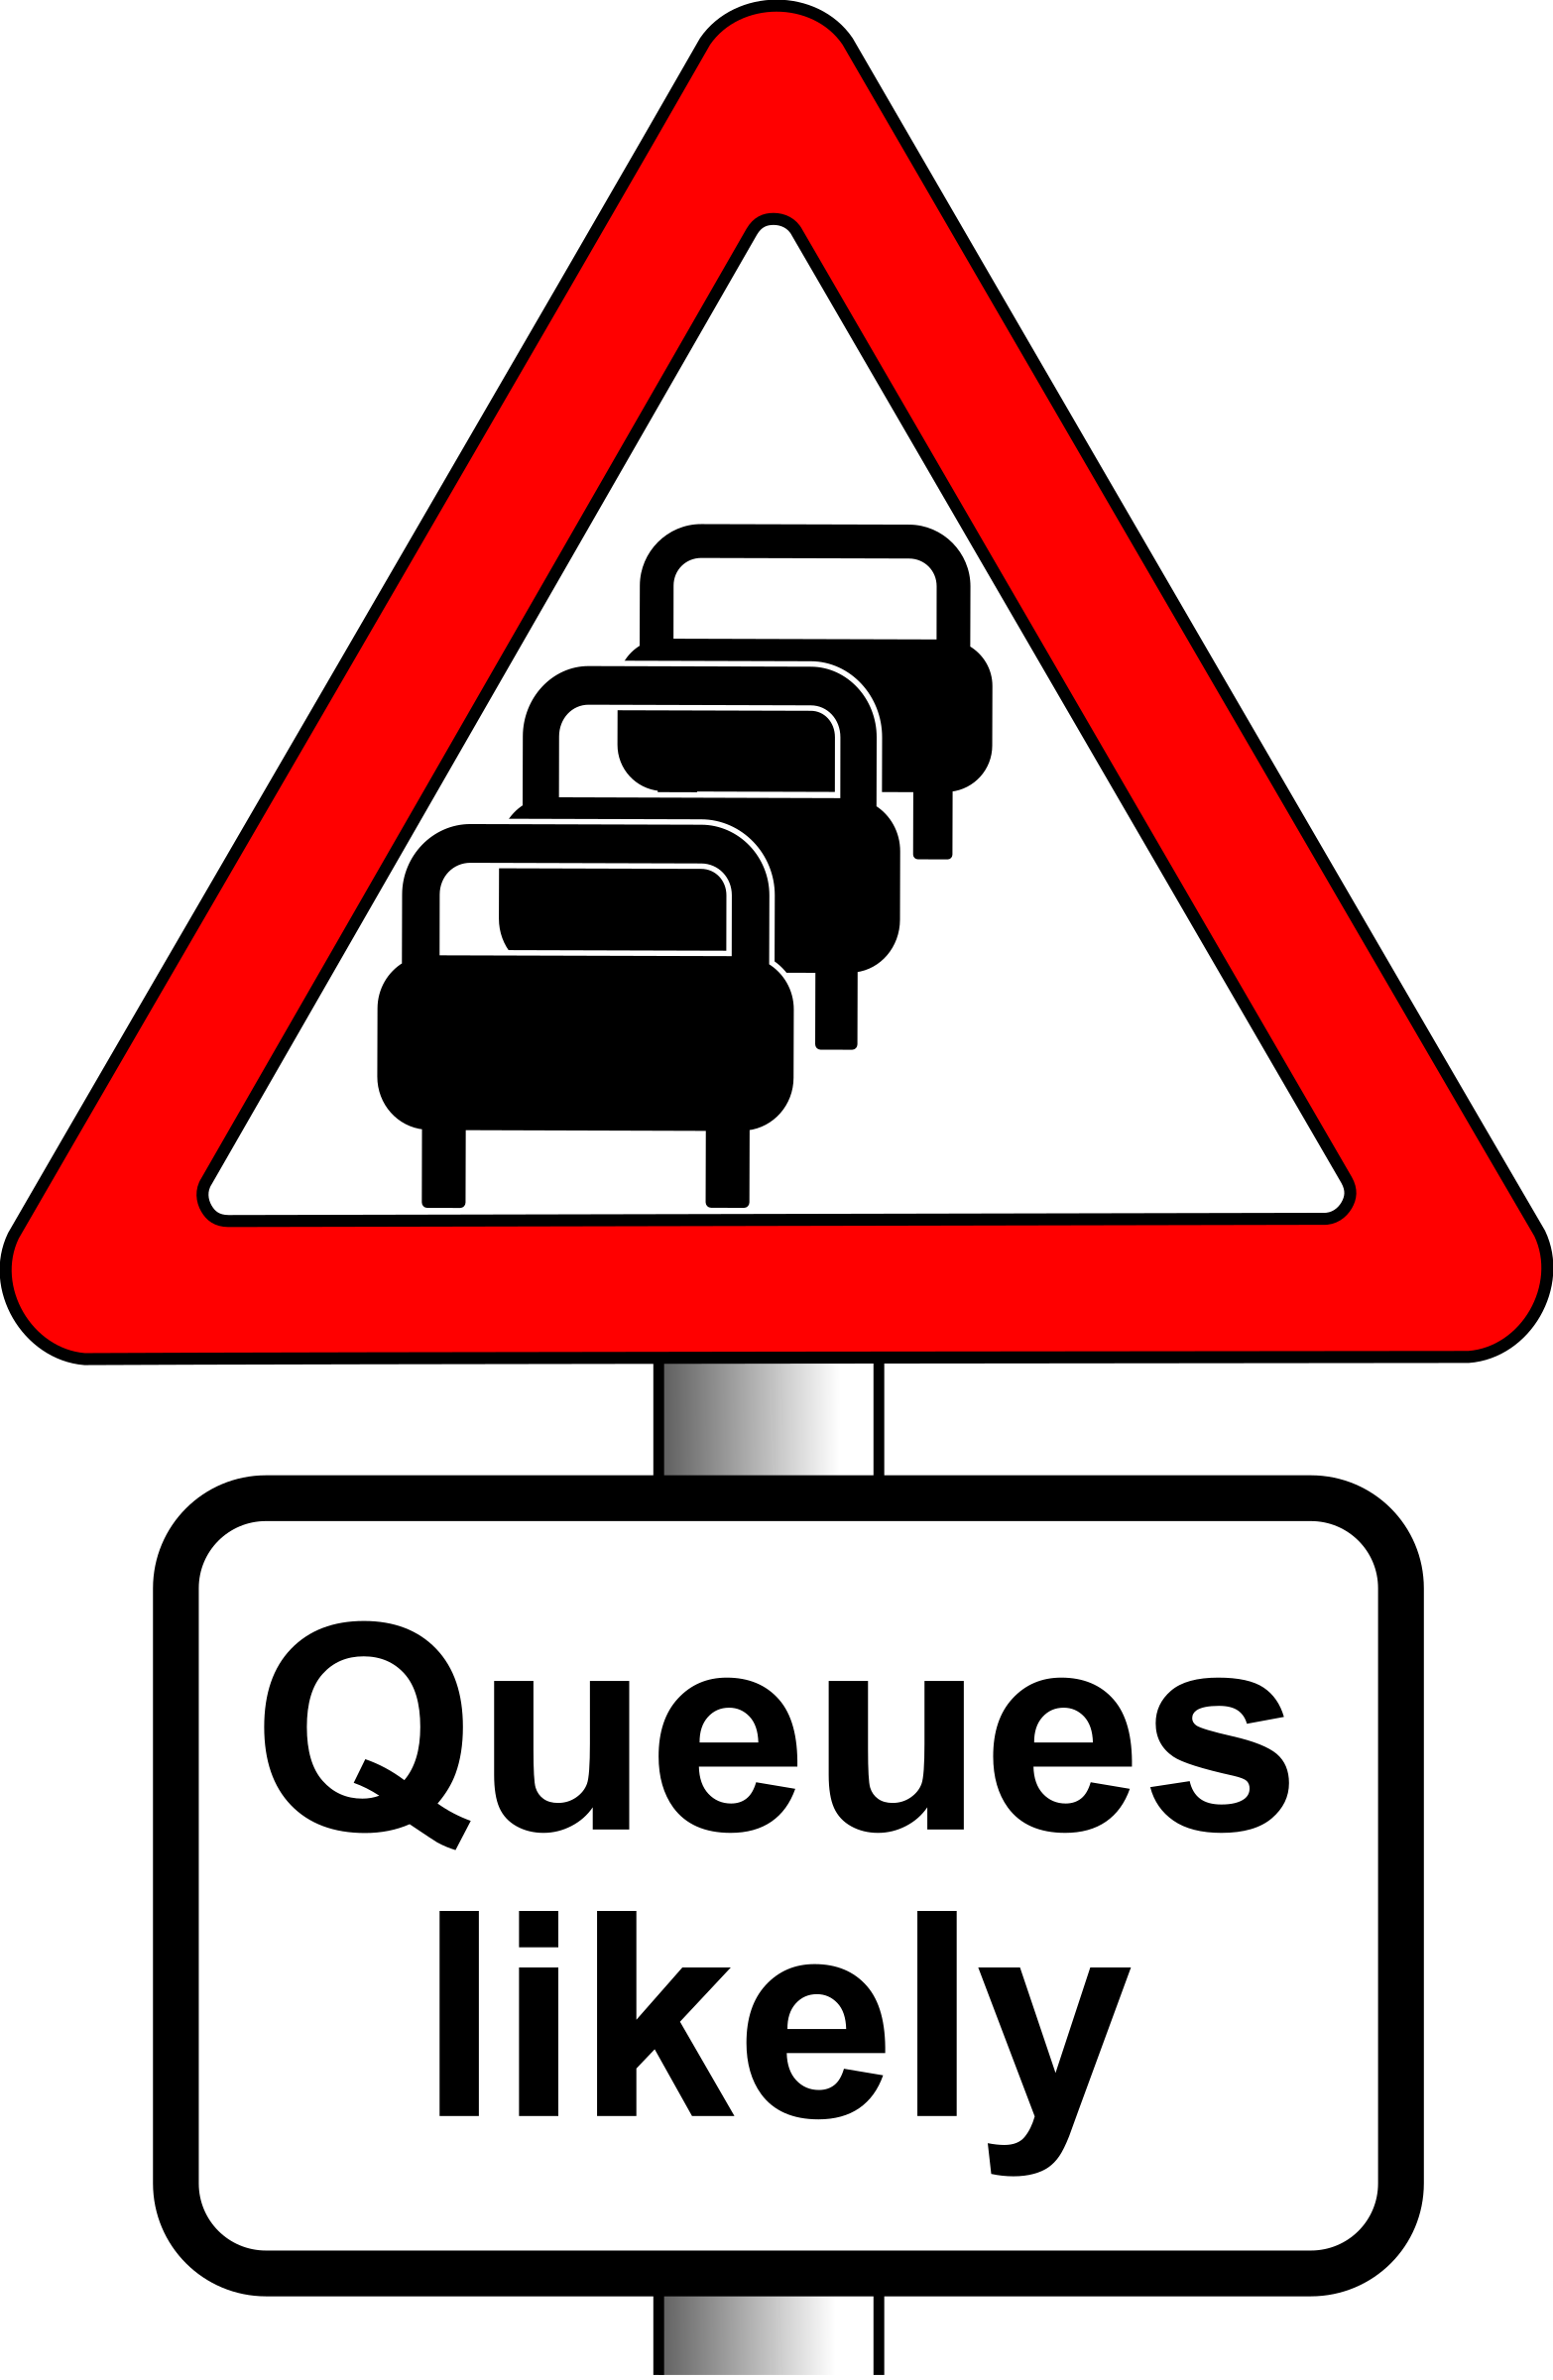 Roadsign queues by Simarilius